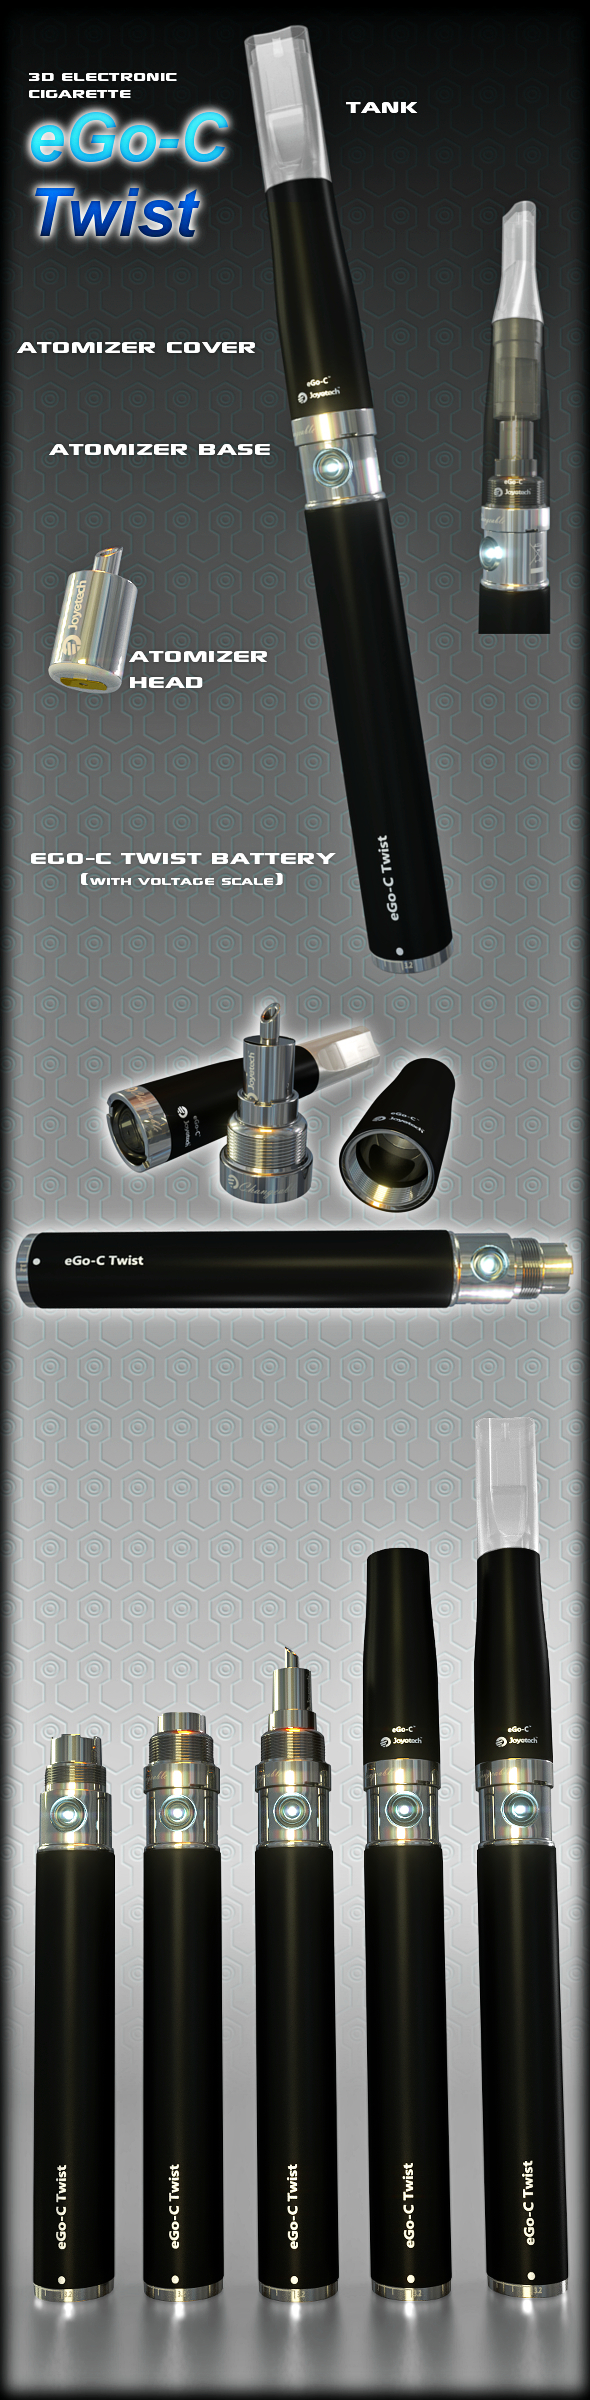 eGo-V eGo-VV Cigarette - 3DOcean Item for Sale